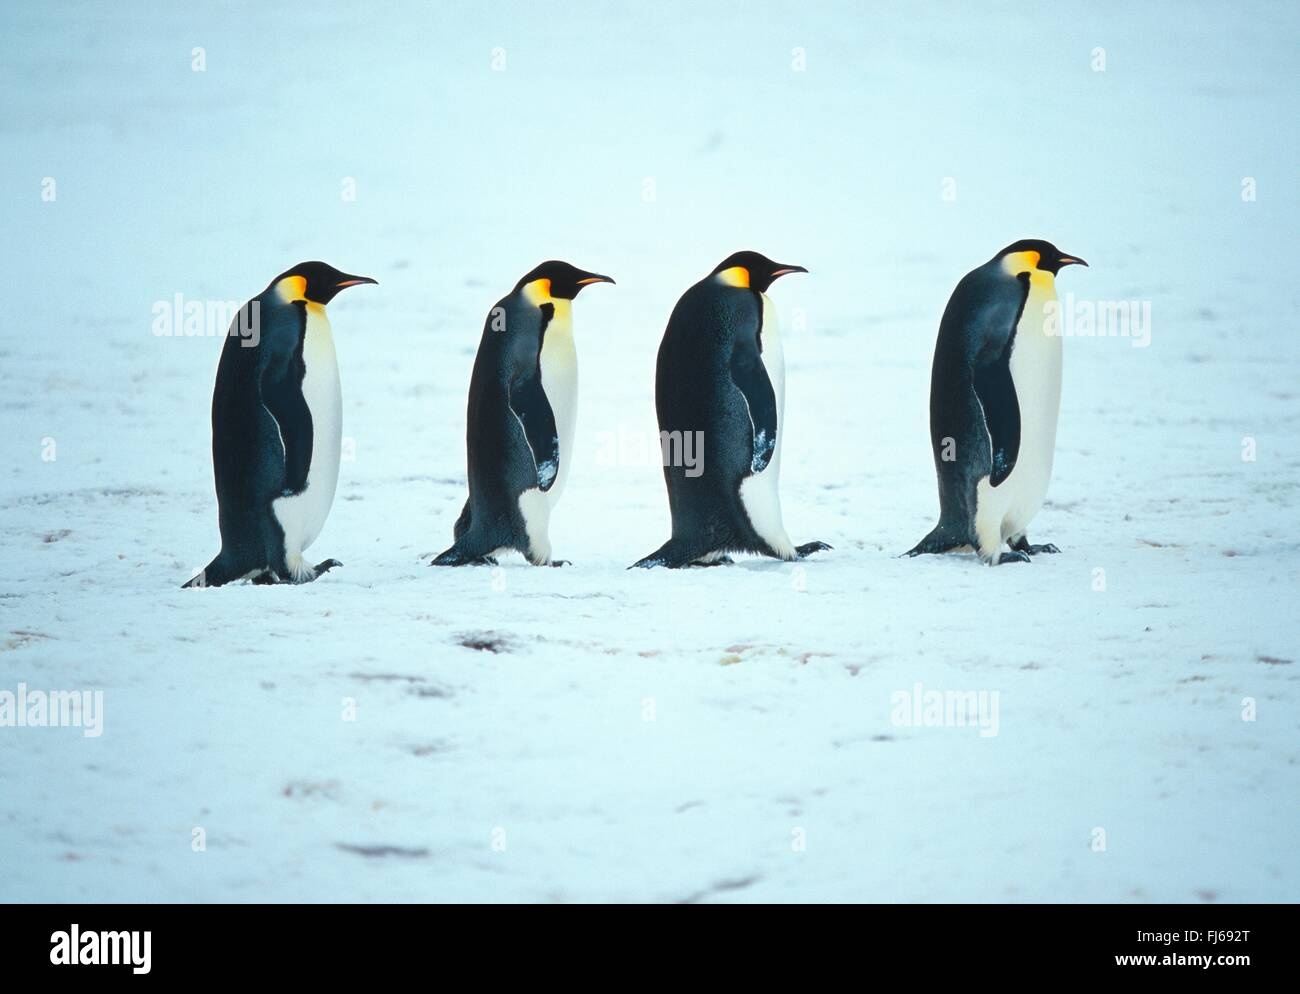 Emperor penguin (Aptenodytes forsteri), walking through the snow one behind the other , Antarctica - Stock Image